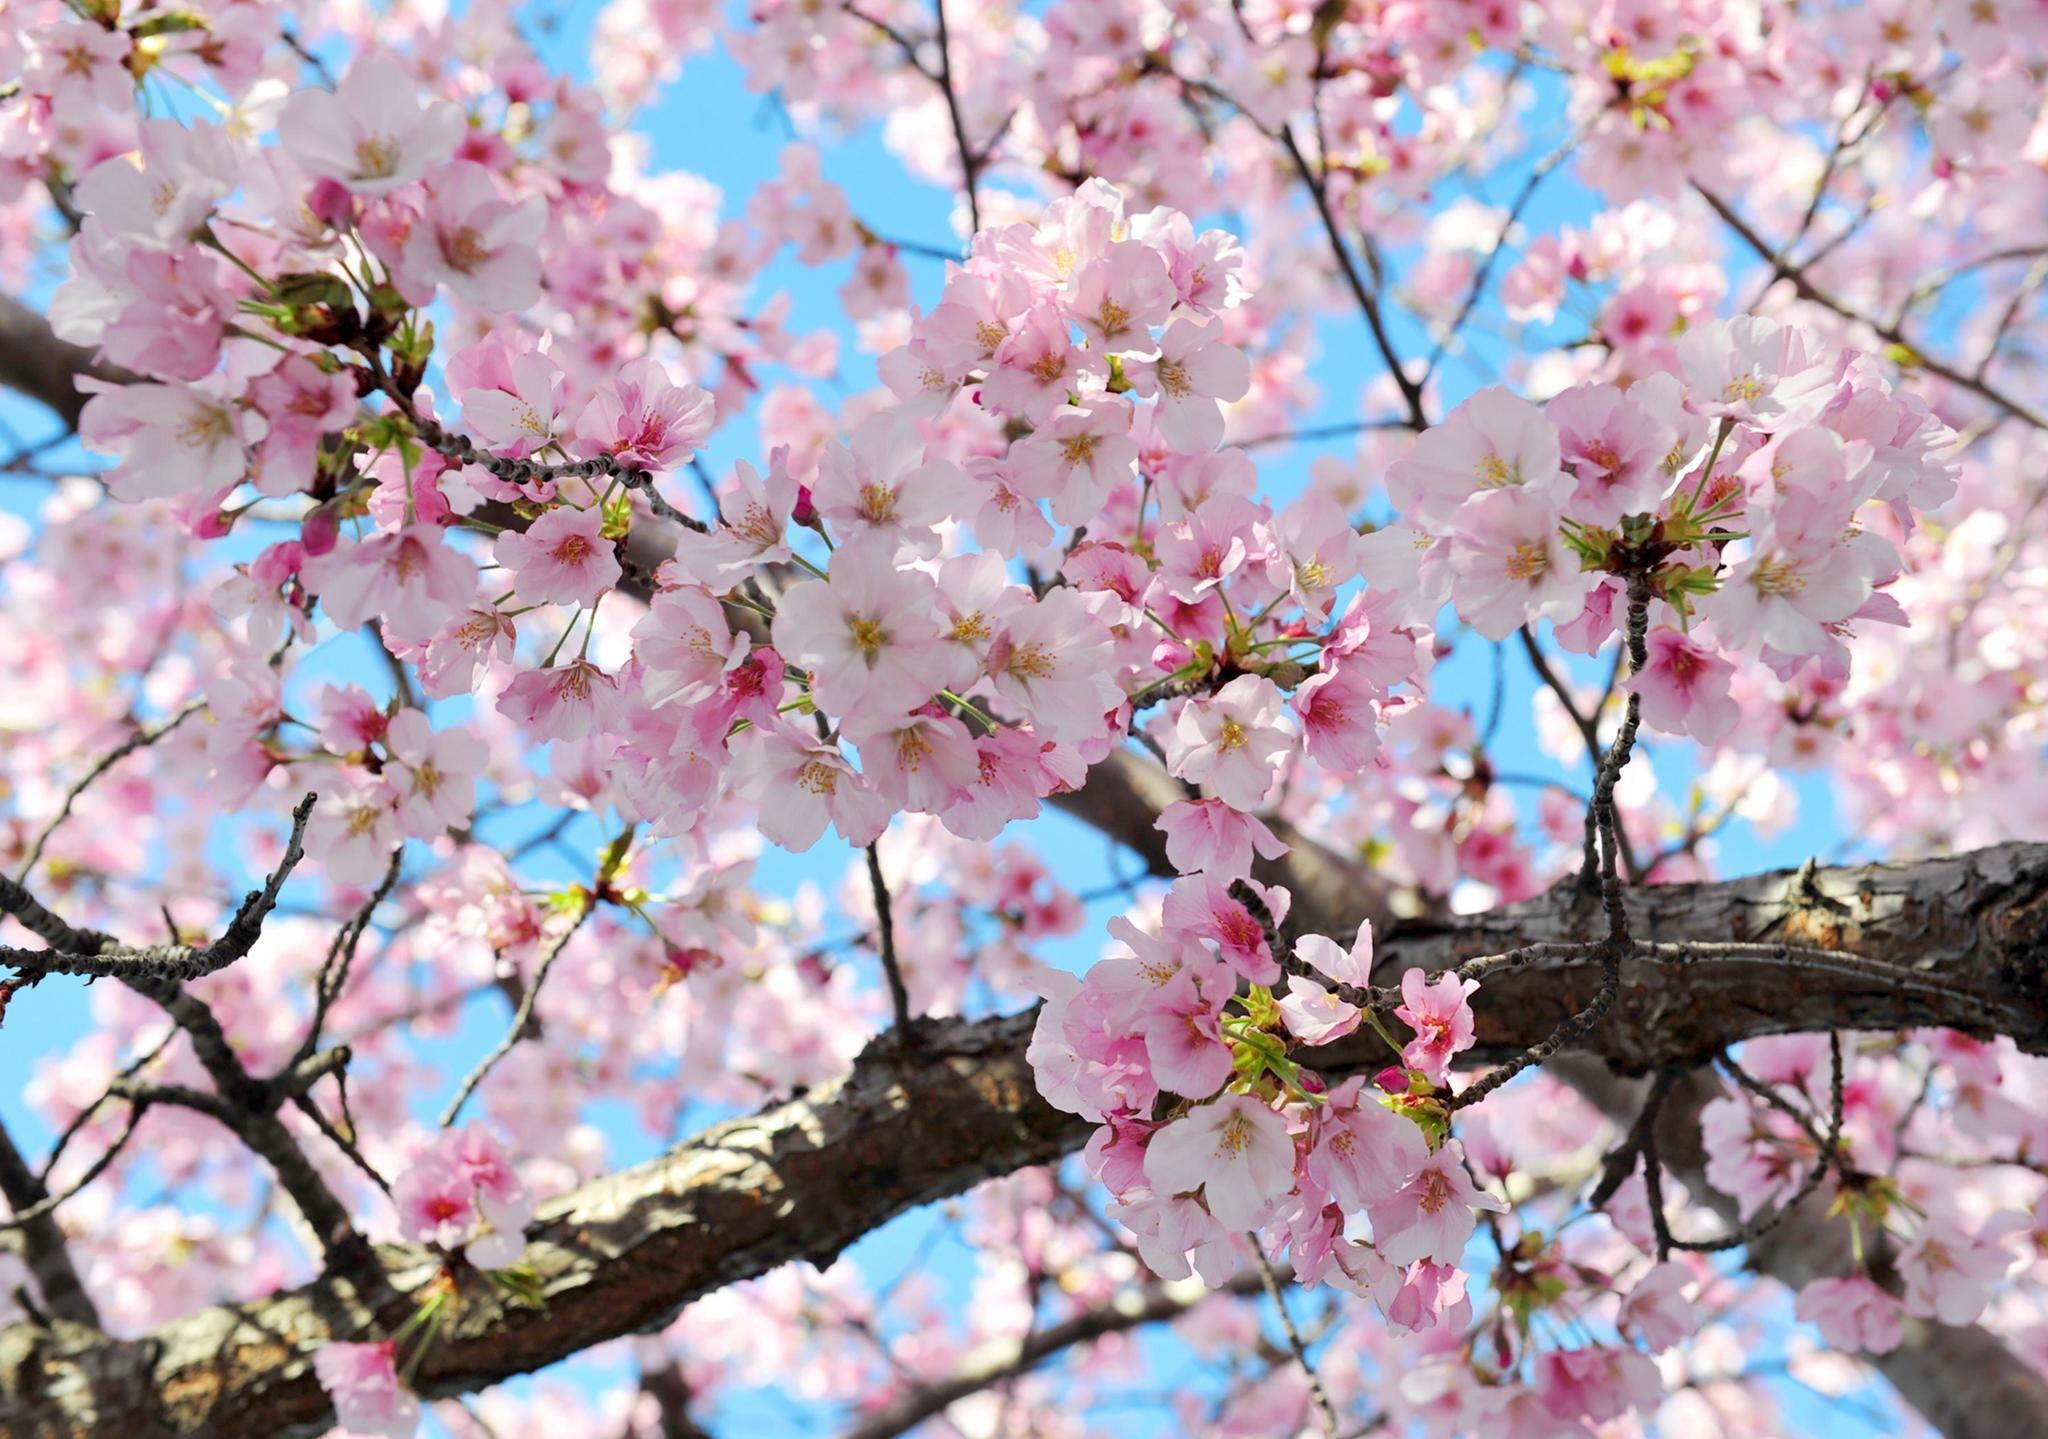 Cherry blossoms could be seriously damaged by upcoming Cherry blossom pictures